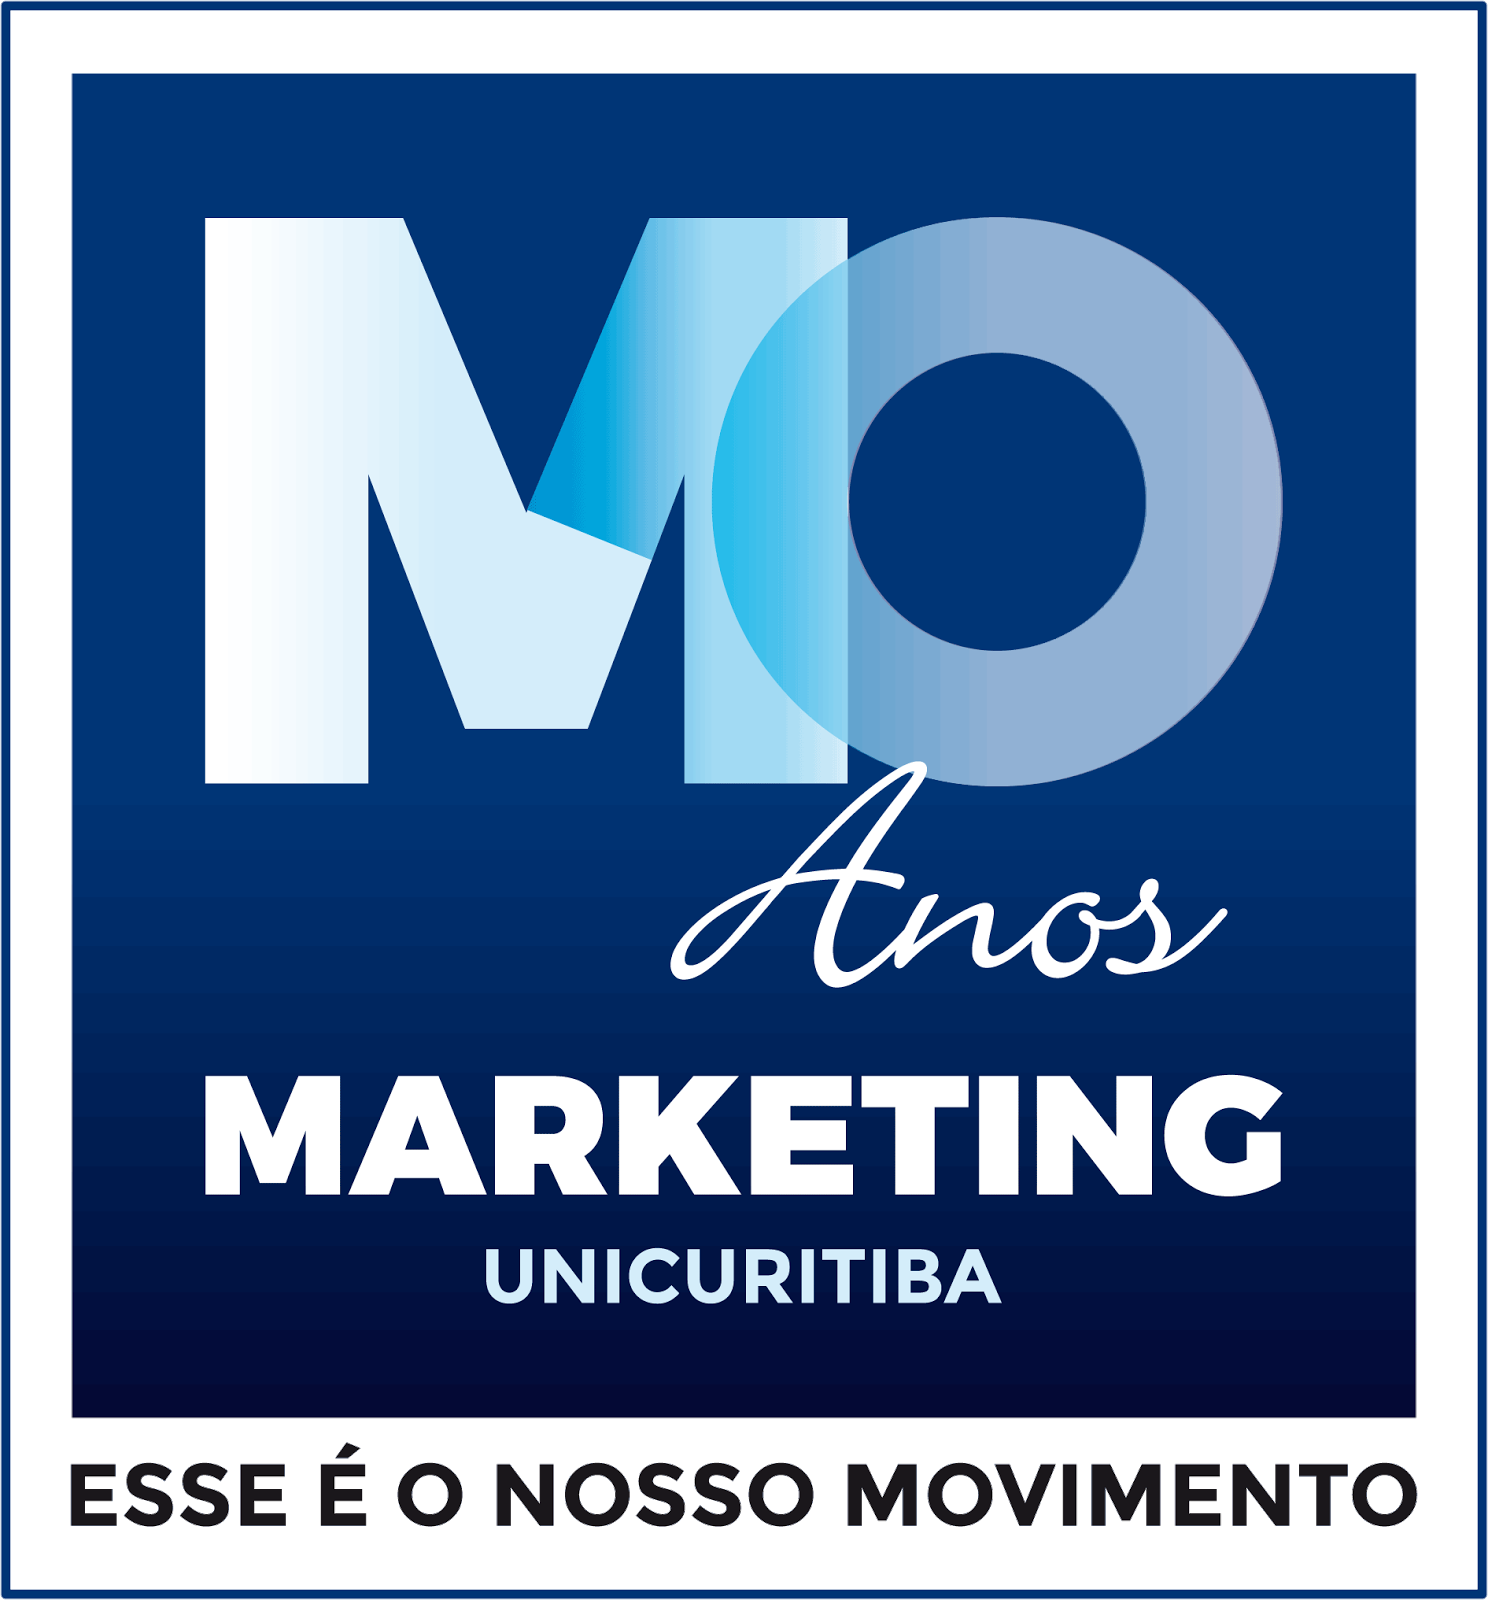 10 Anos Marketing UNICURITIBA